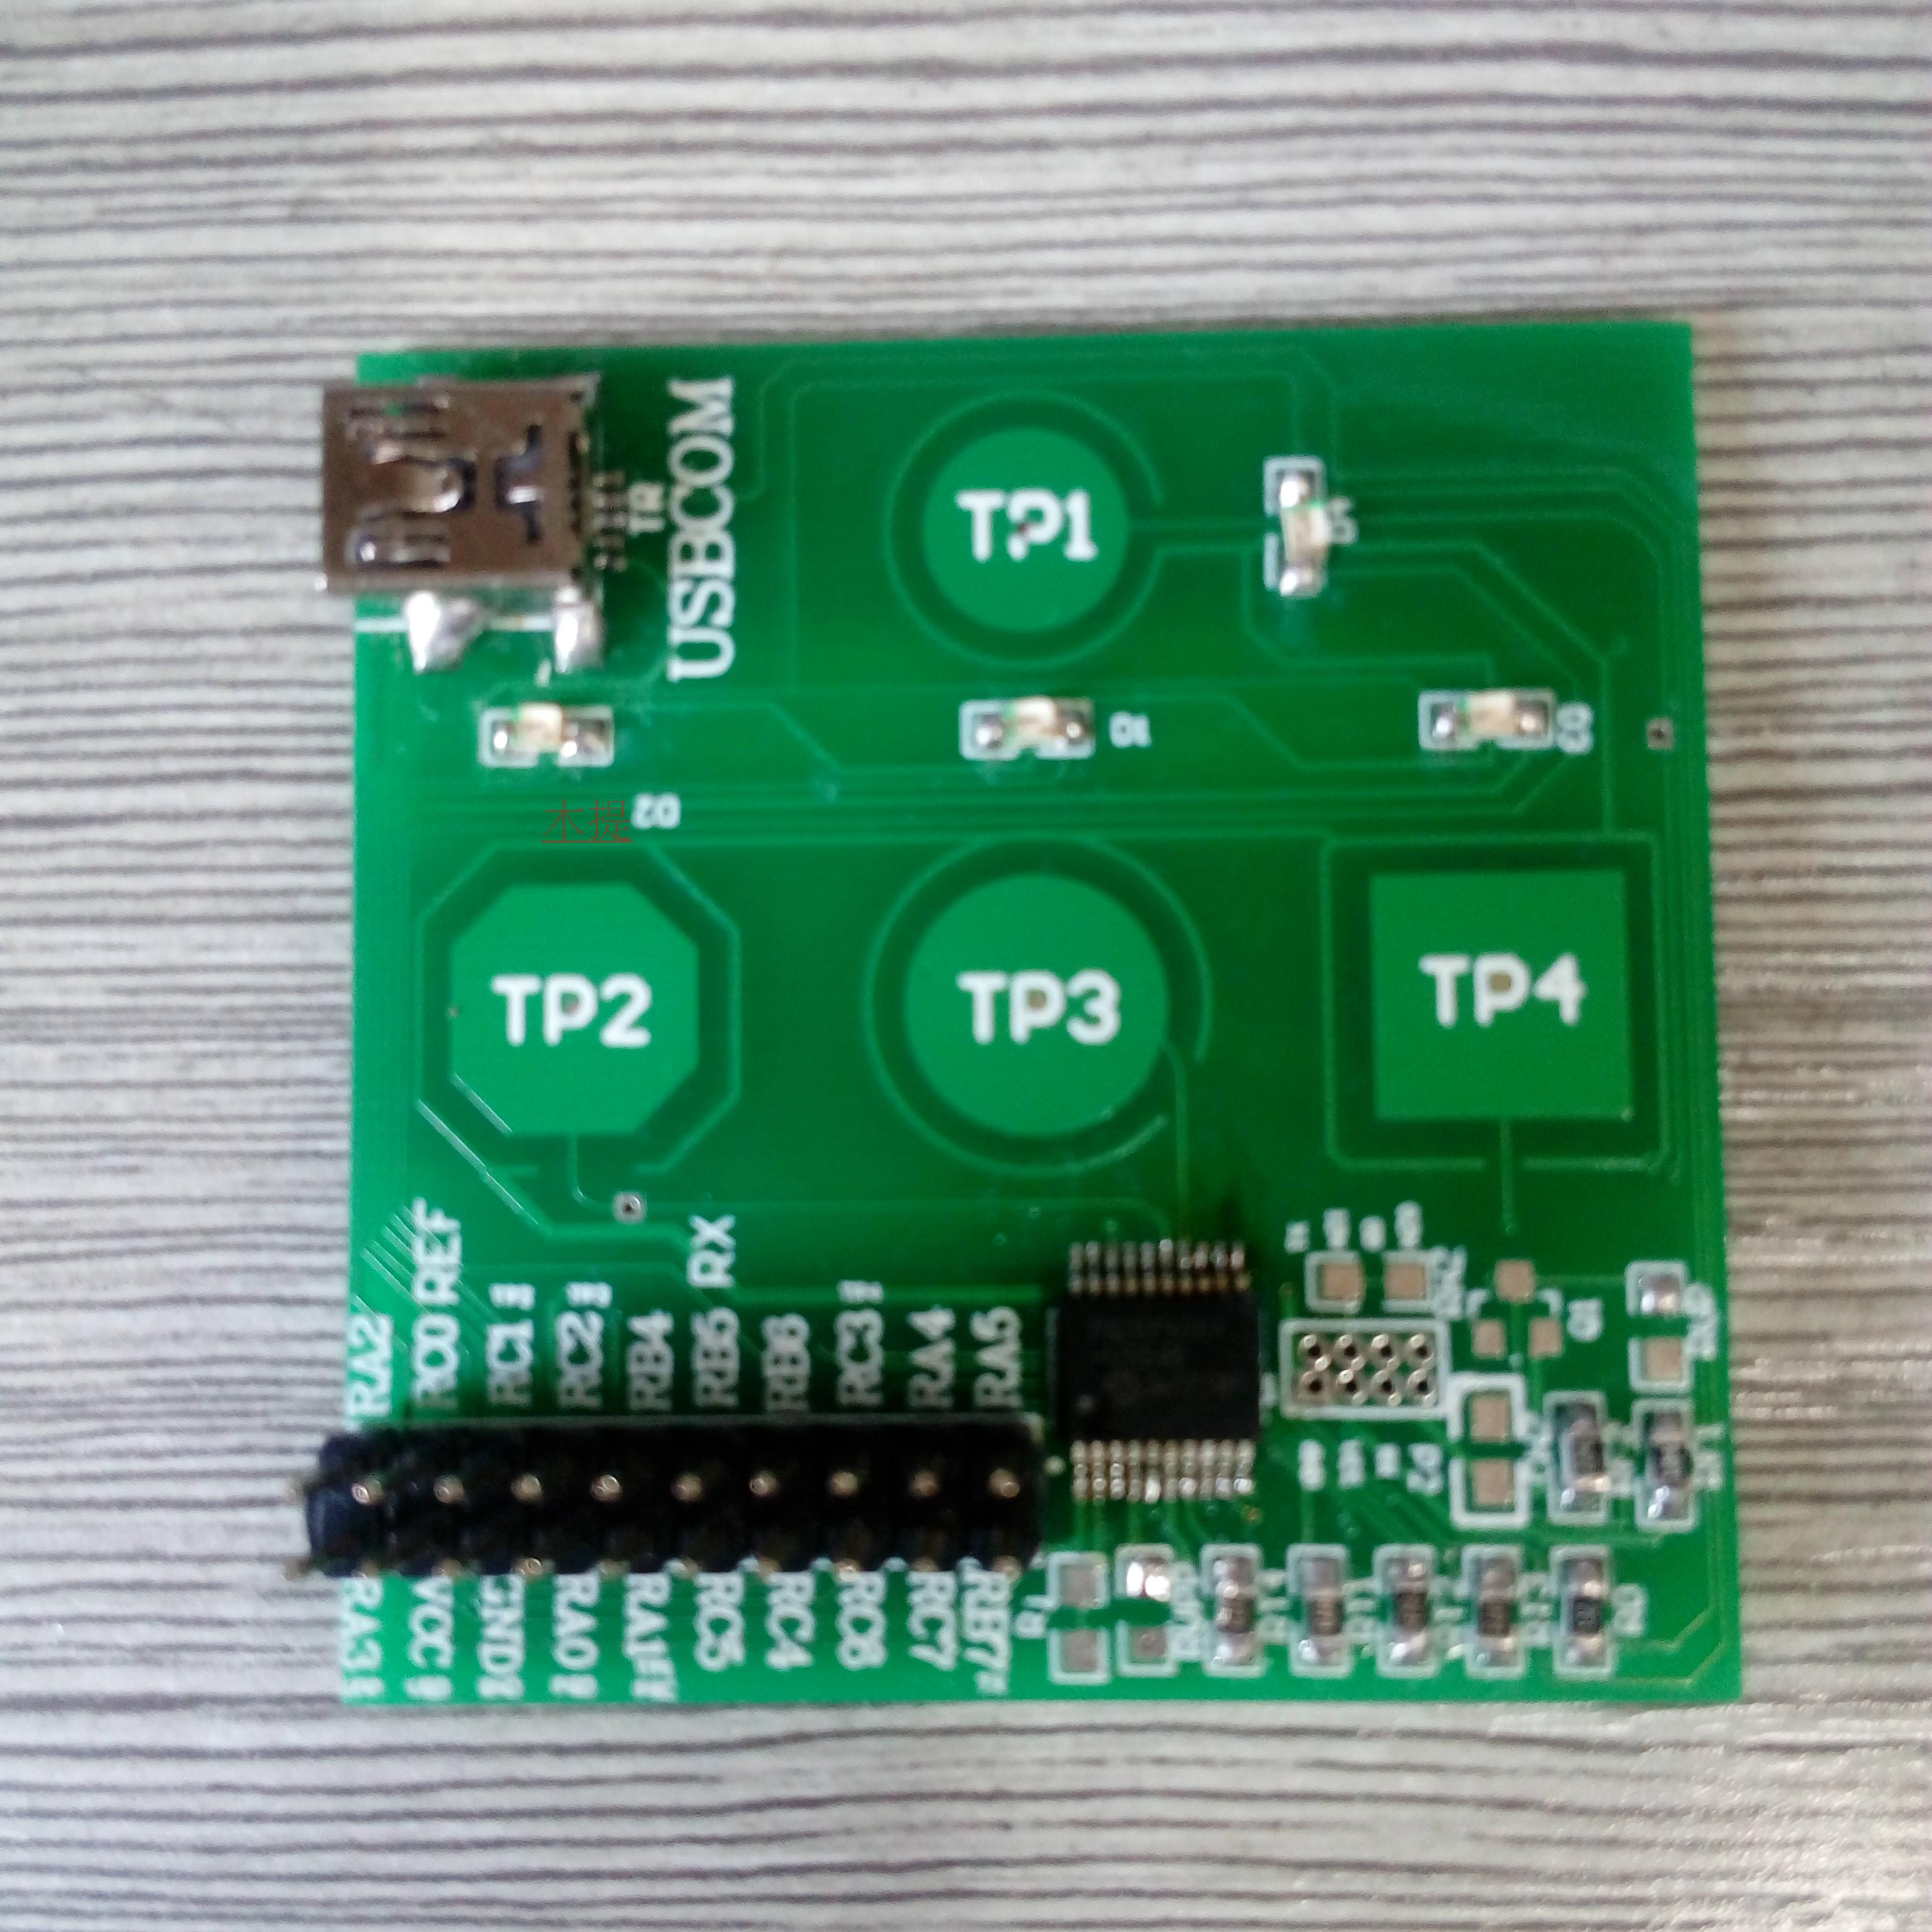 16F1828/9 capacitive touch key PIC learning PIC development board capacitive development board touch development<br>